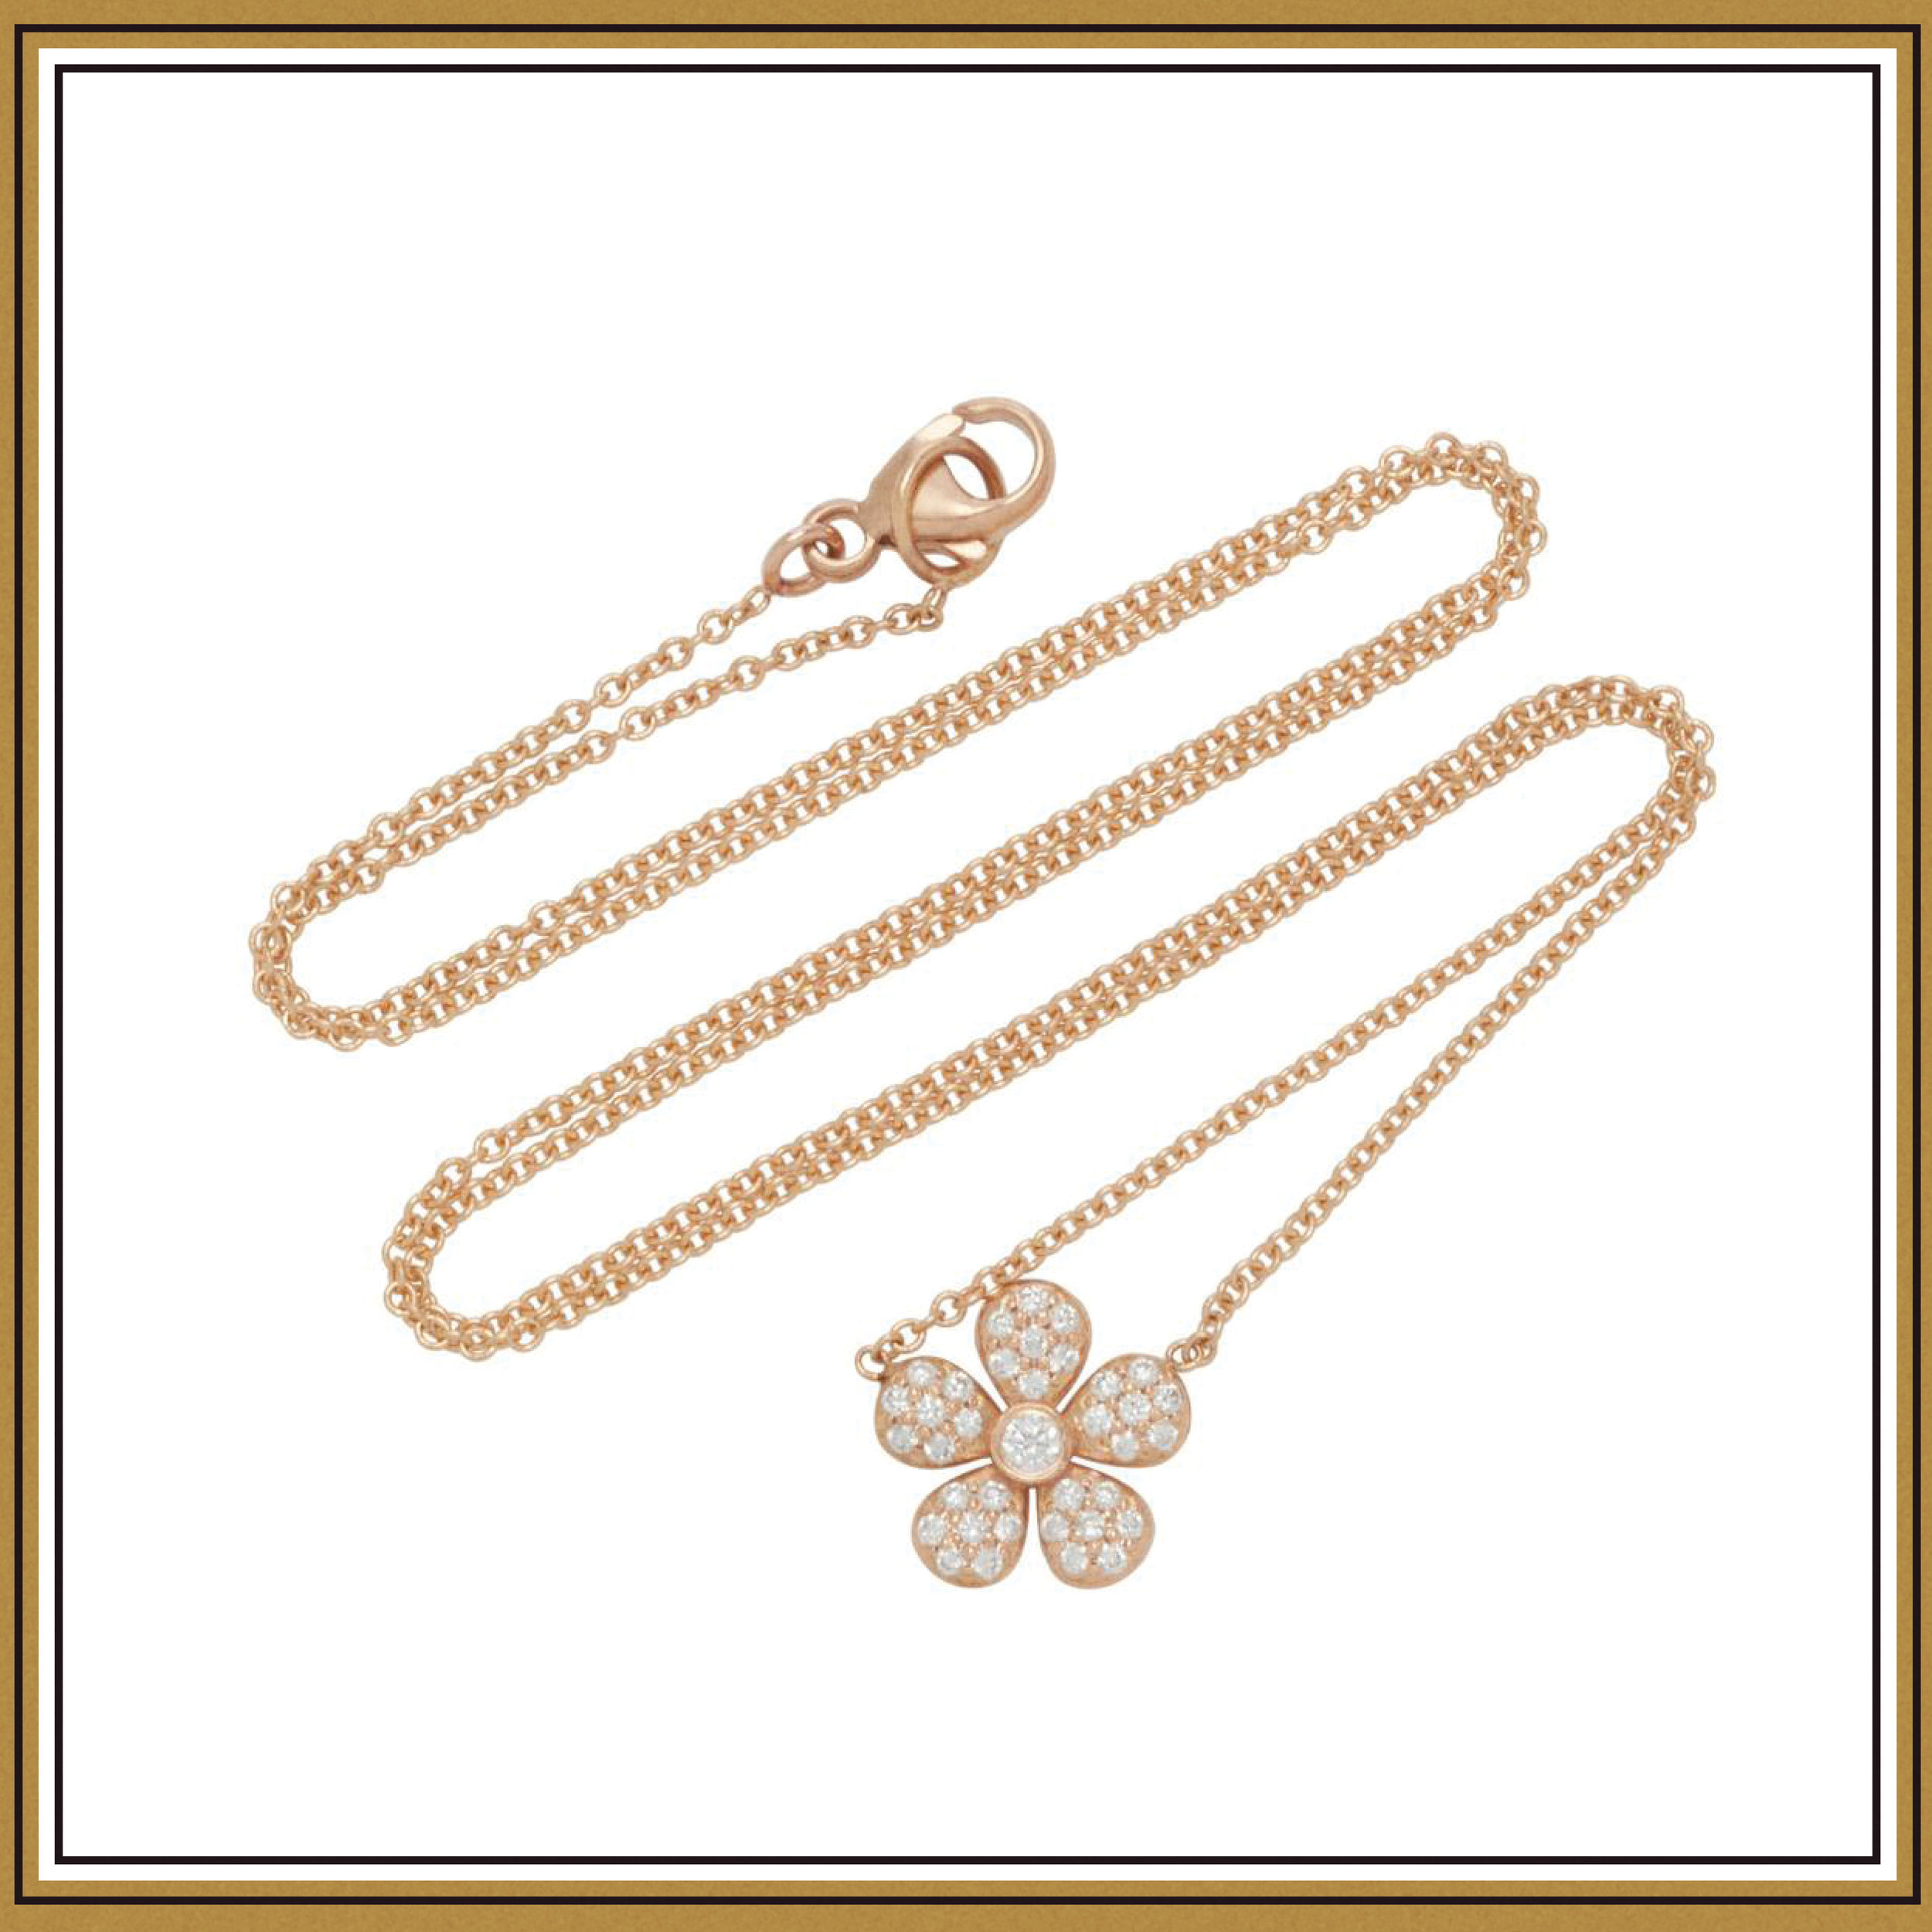 Colette Jewelry Ivy 18K Rose Gold Pendant Necklace ($1100)